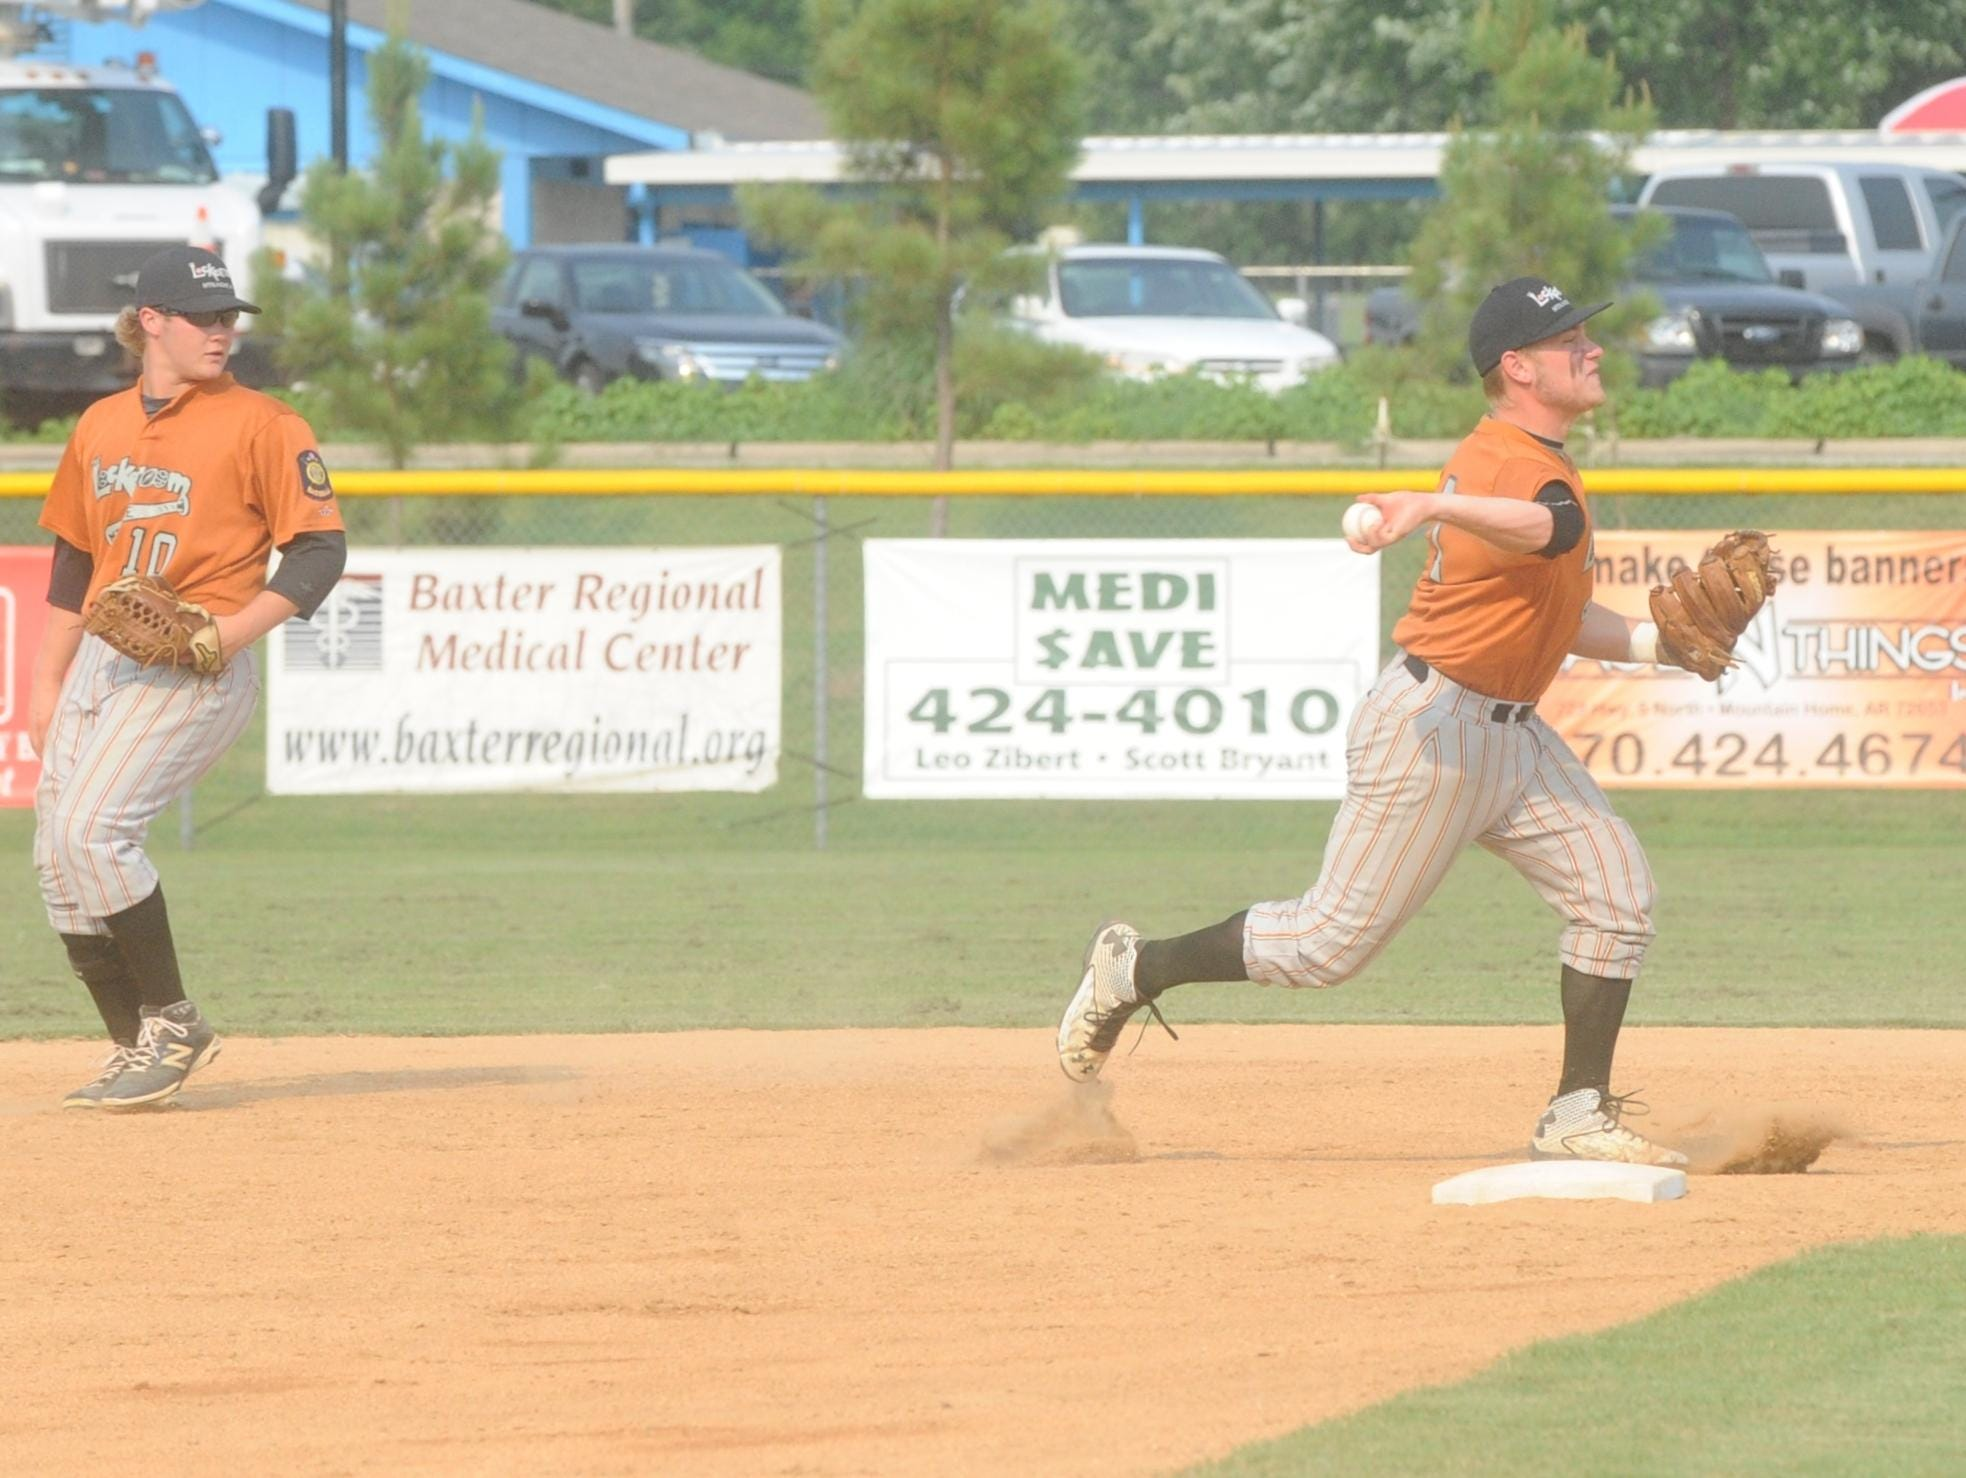 Lockeroom shortstop Hayden Hall, right, throws to first for an out during Mountain Home's 8-1 victory over Batesville on Tuesday at Cooper Park. Also pictured is second baseman Matt Robbins.